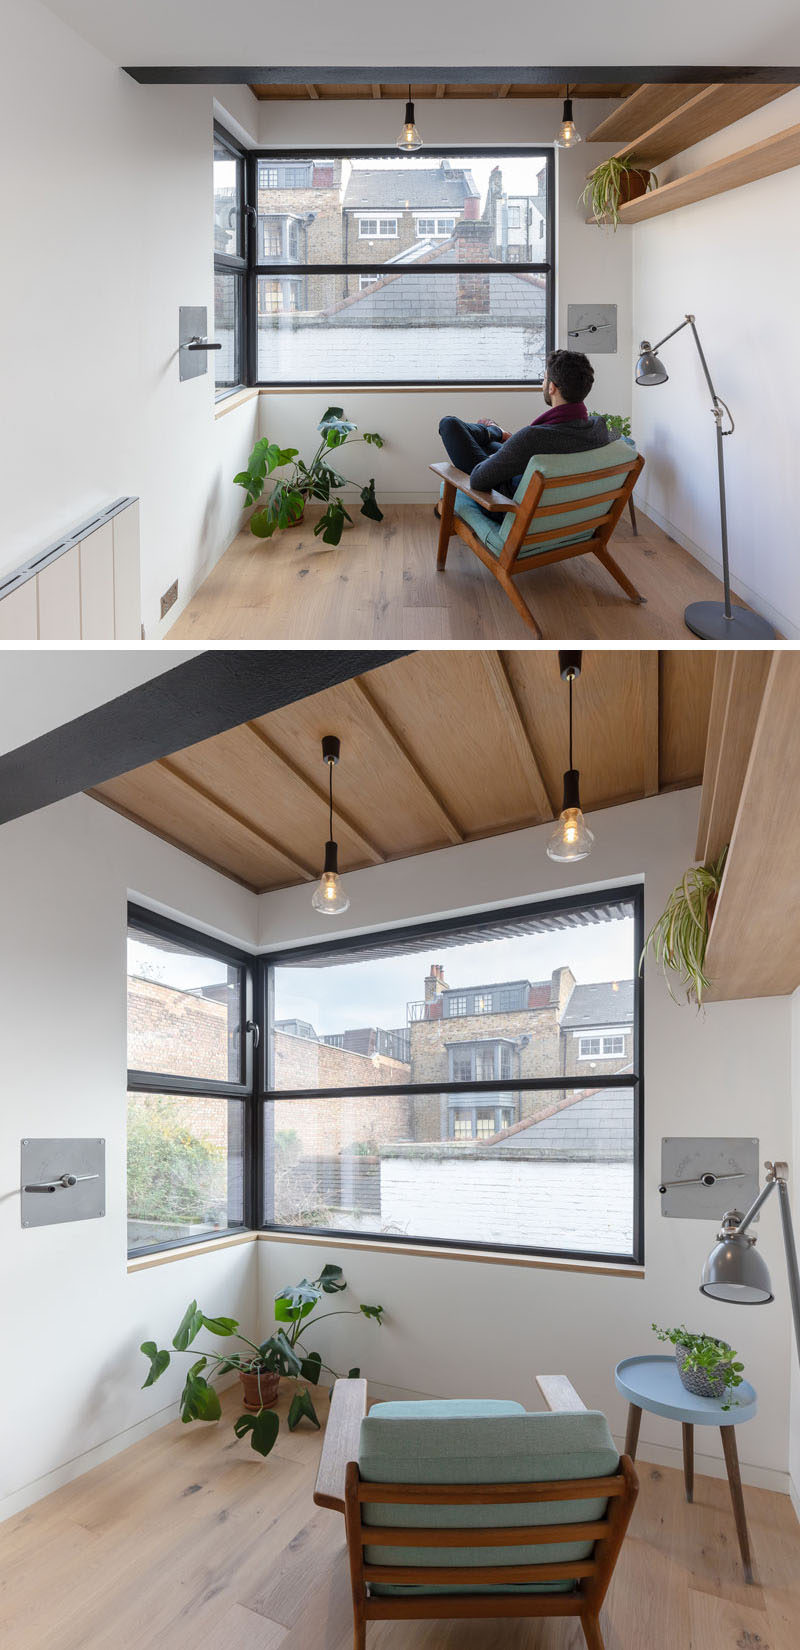 This modern extension has minimal furnishings with wood shelving, some plants, and a couple of pendant lights. #GuestRoom #ModernExtension #Windows